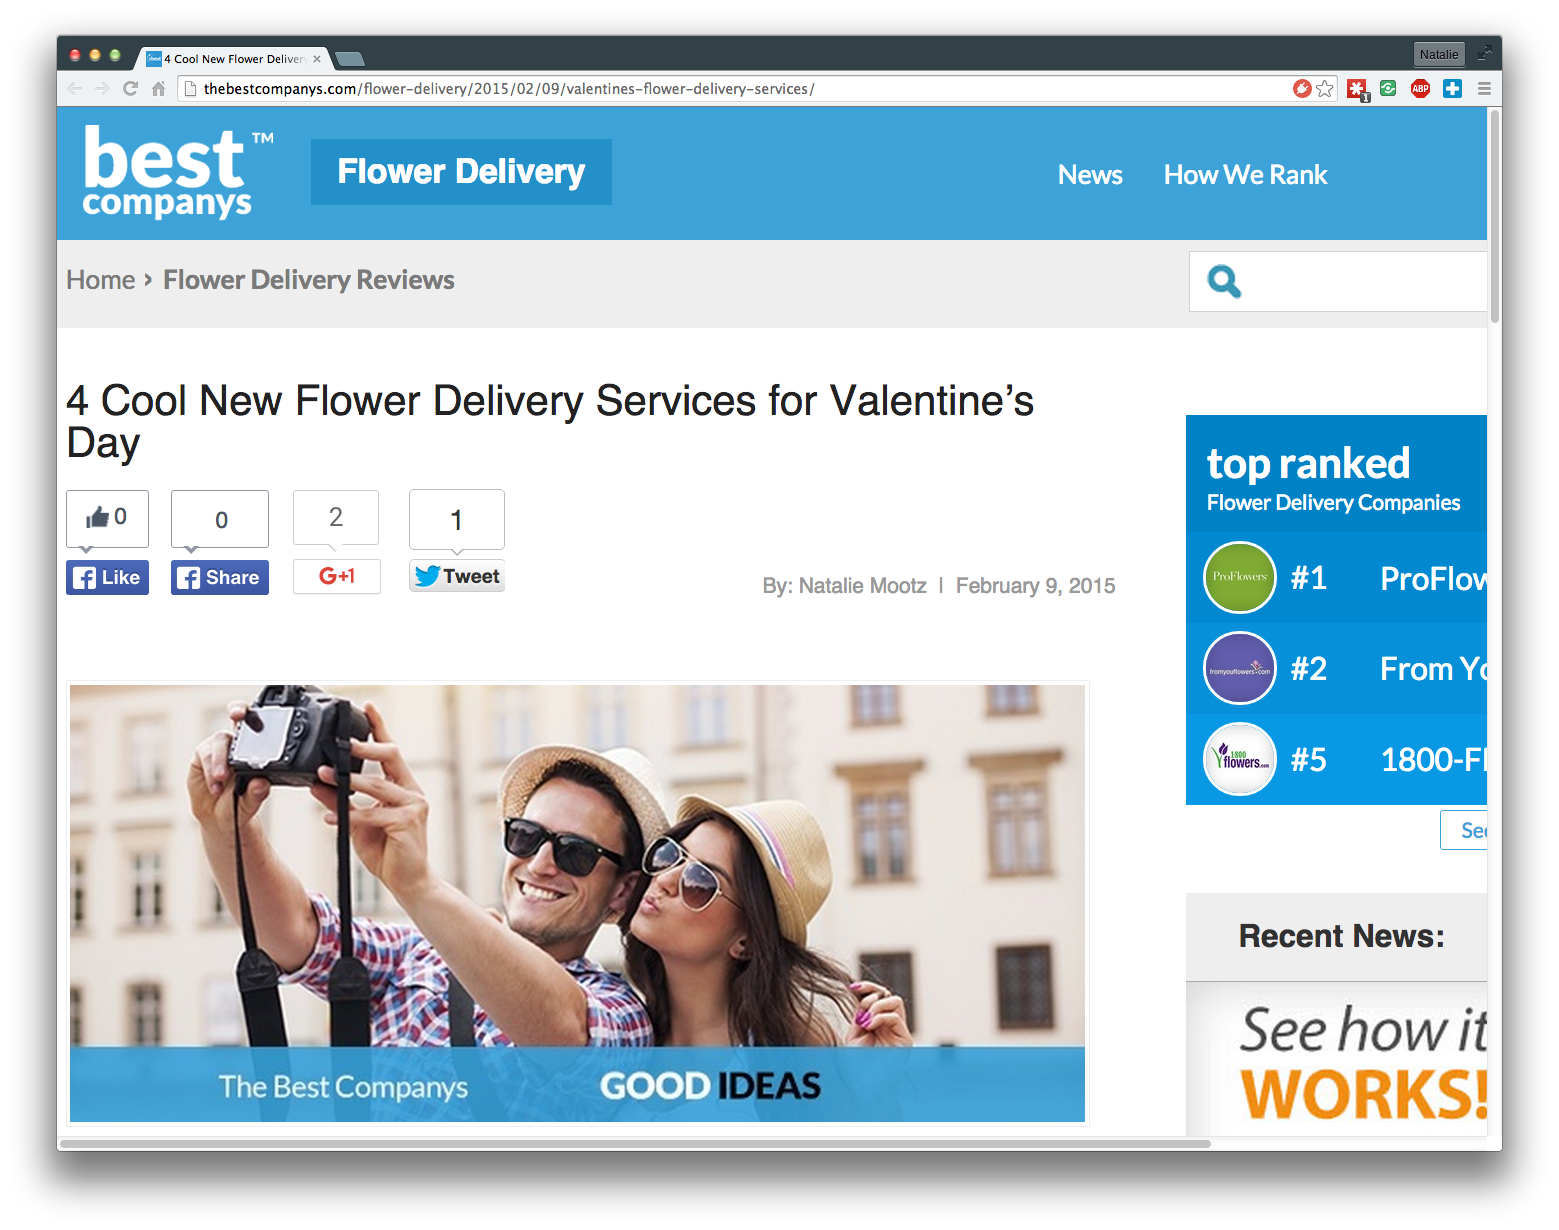 4 Cool New Flower Delivery Services for Valentine's Day